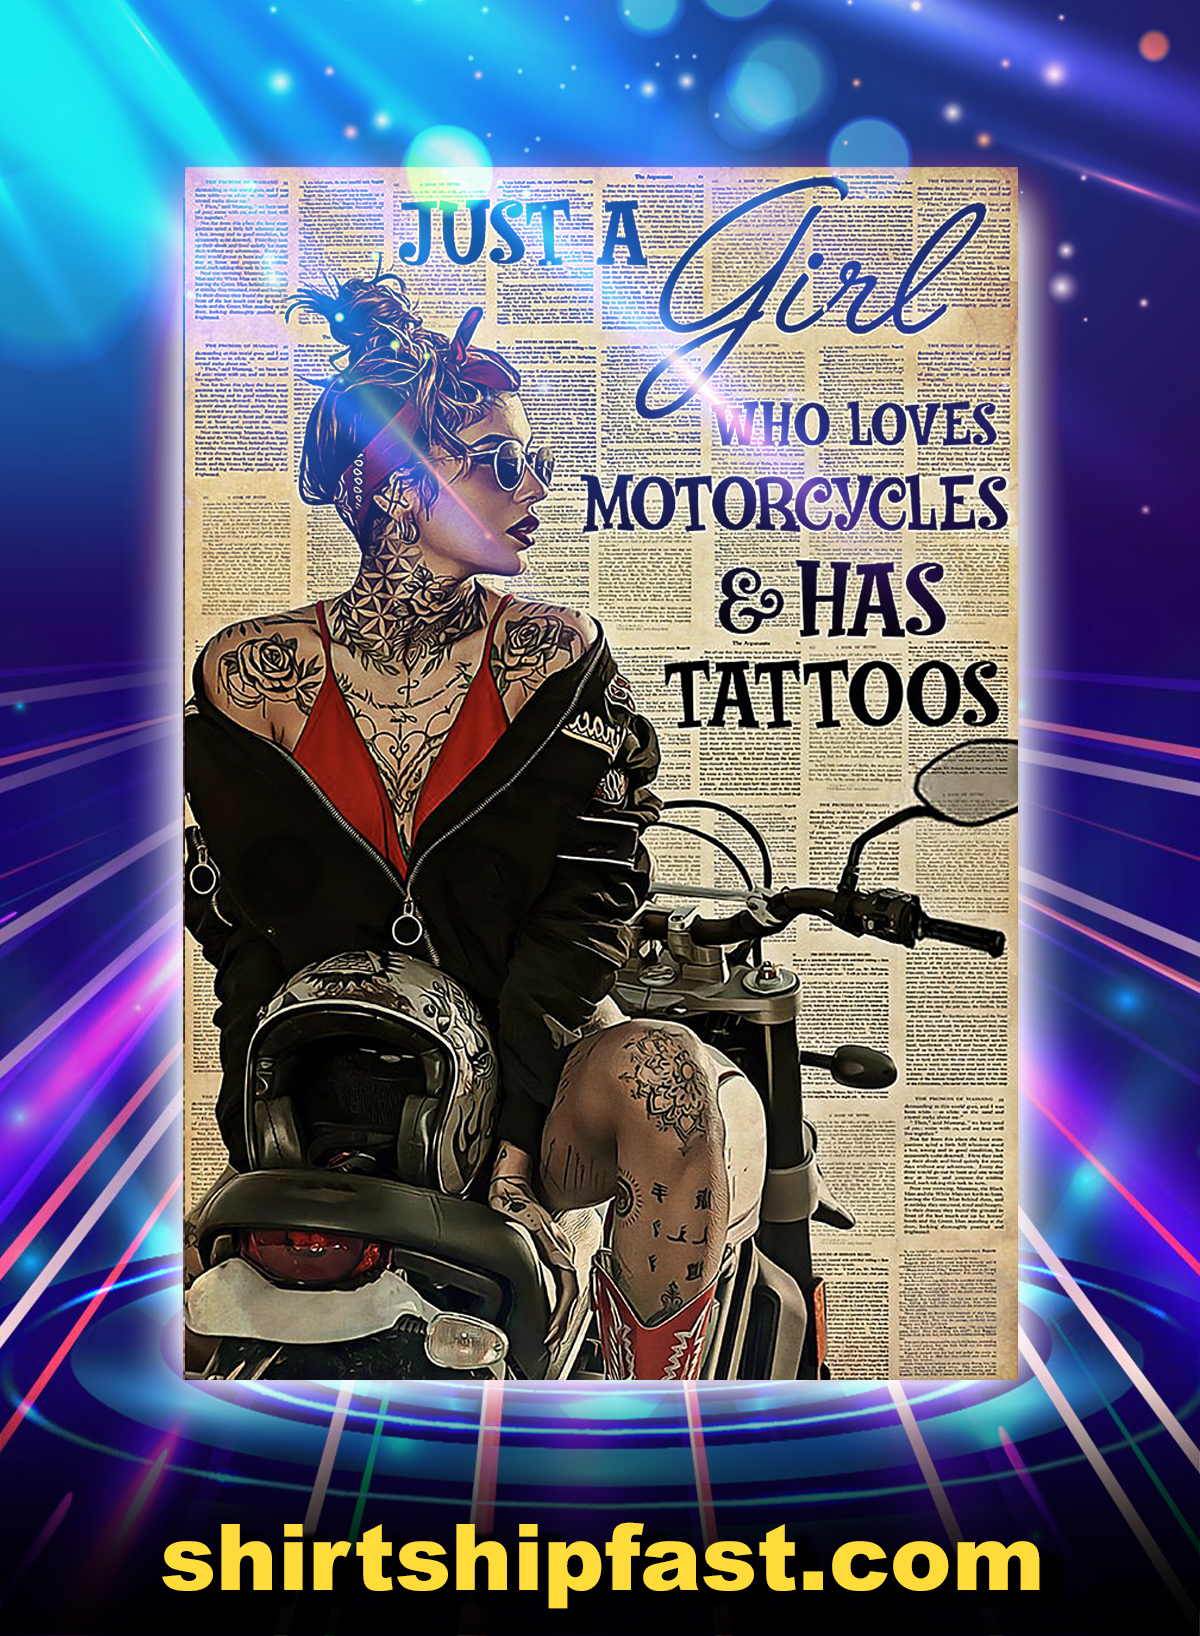 Just a girl who loves motorcycles and has tattoos poster - A4